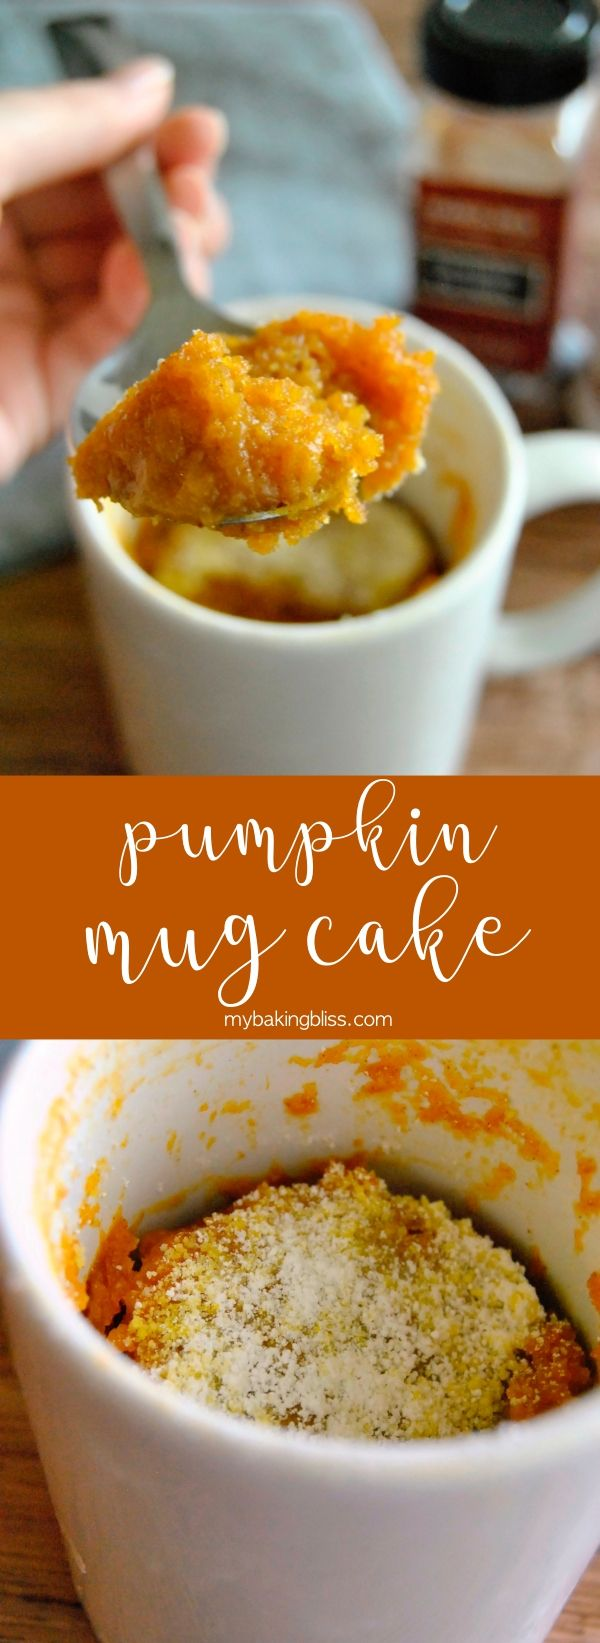 Pumpkin Mug Cake - the PERFECT recipe for leftover canned pumpkin. This easy microwave mug cake comes together in under five minutes and is full of fall flavors! | mybakingbliss.com #pumpkin #mugcake #falldesserts #mugcake